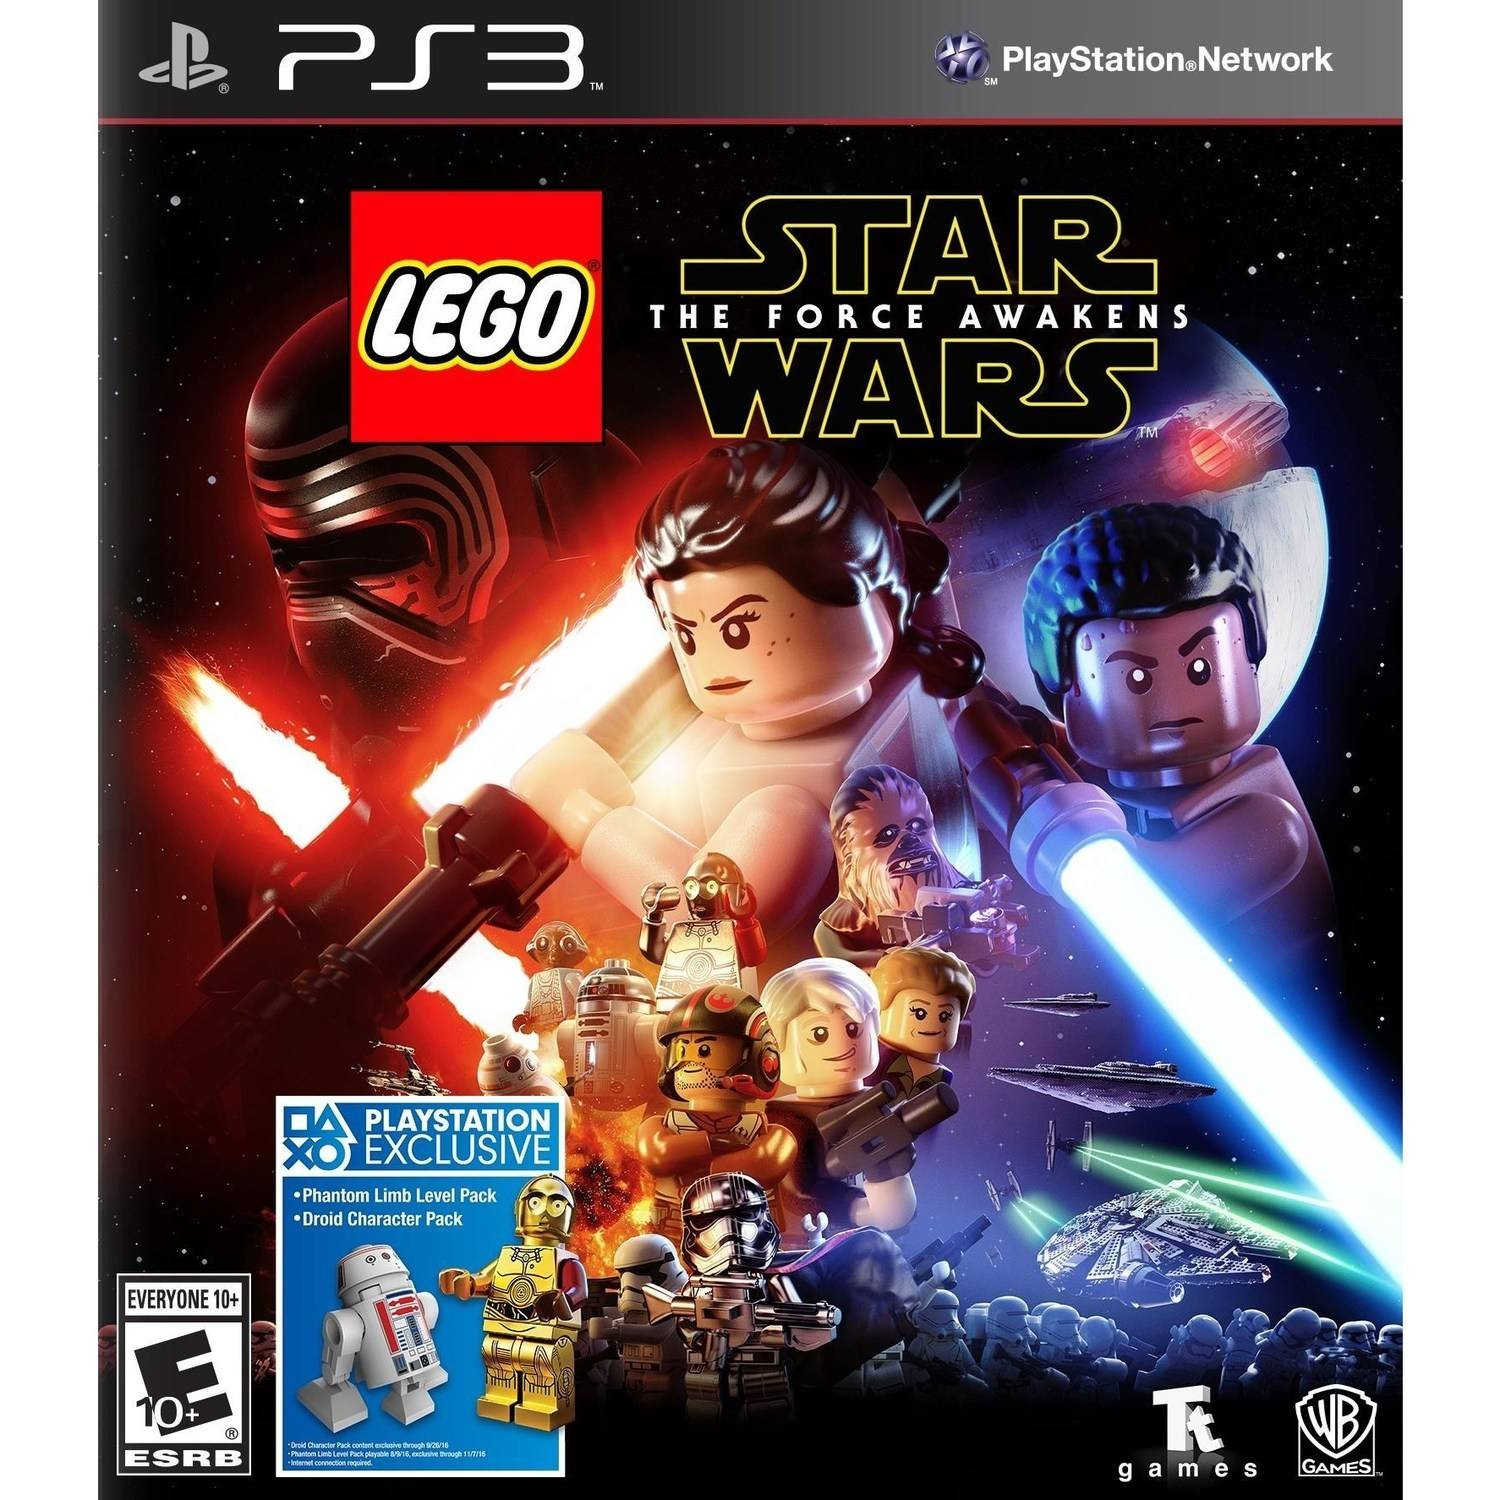 LEGO Star Wars The Force Awakens PS3 Walmart